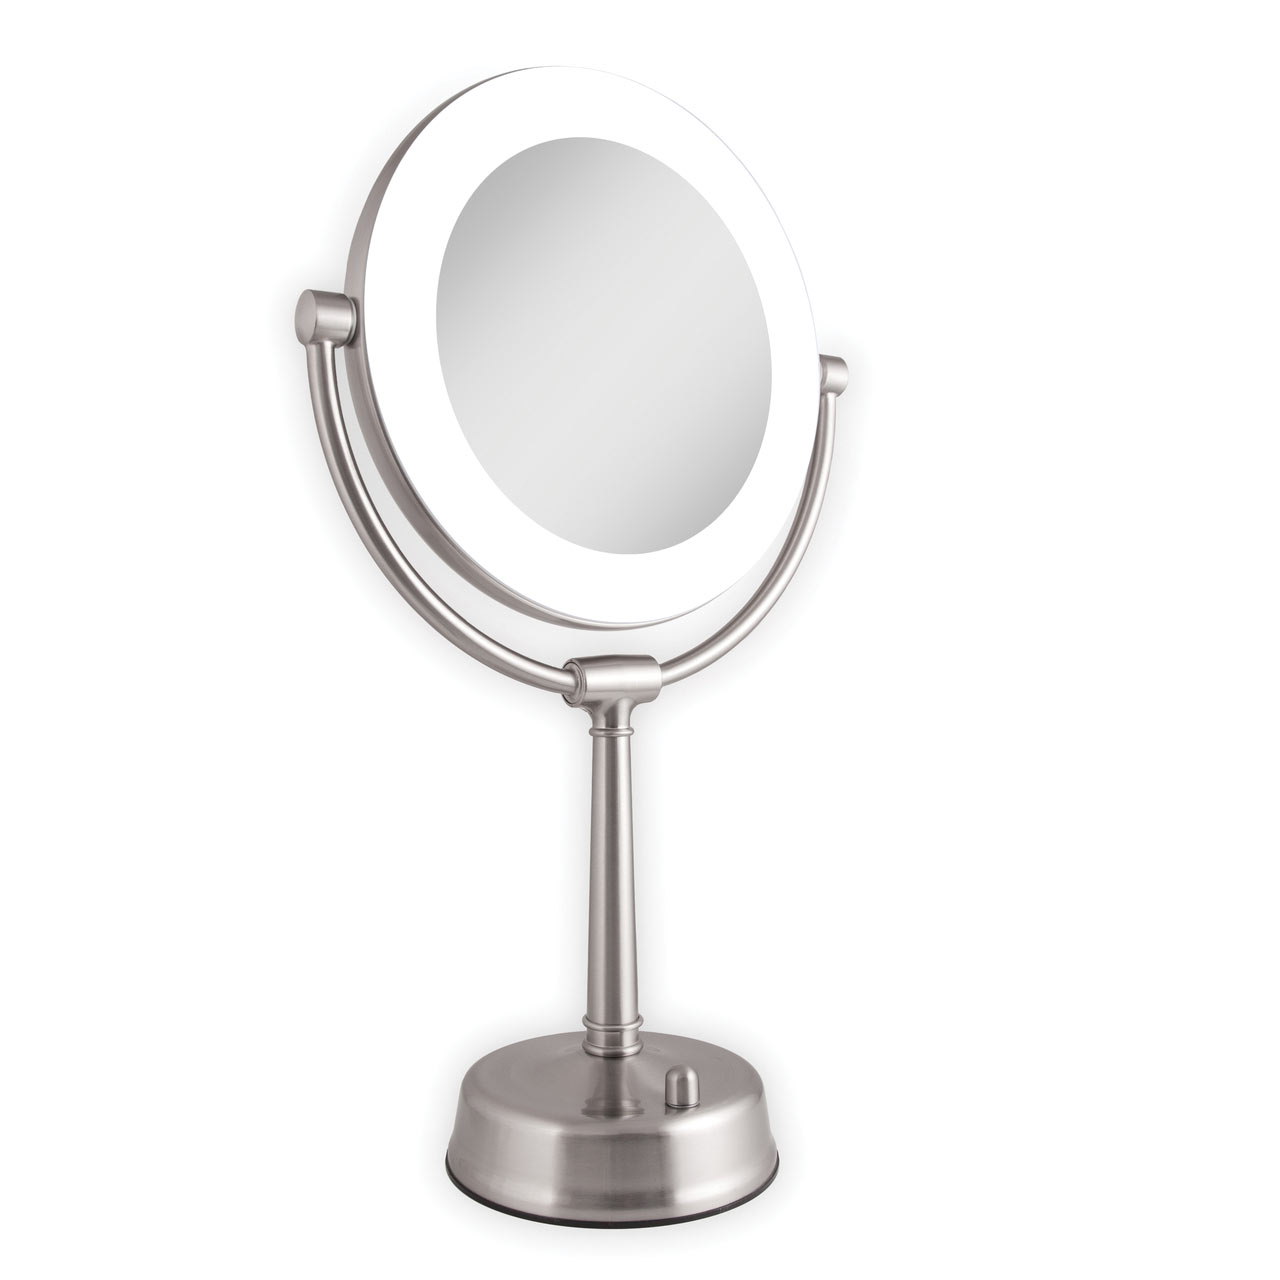 Maxiaids Zadro Dimmable Sunlight Vanity Mirror Optical